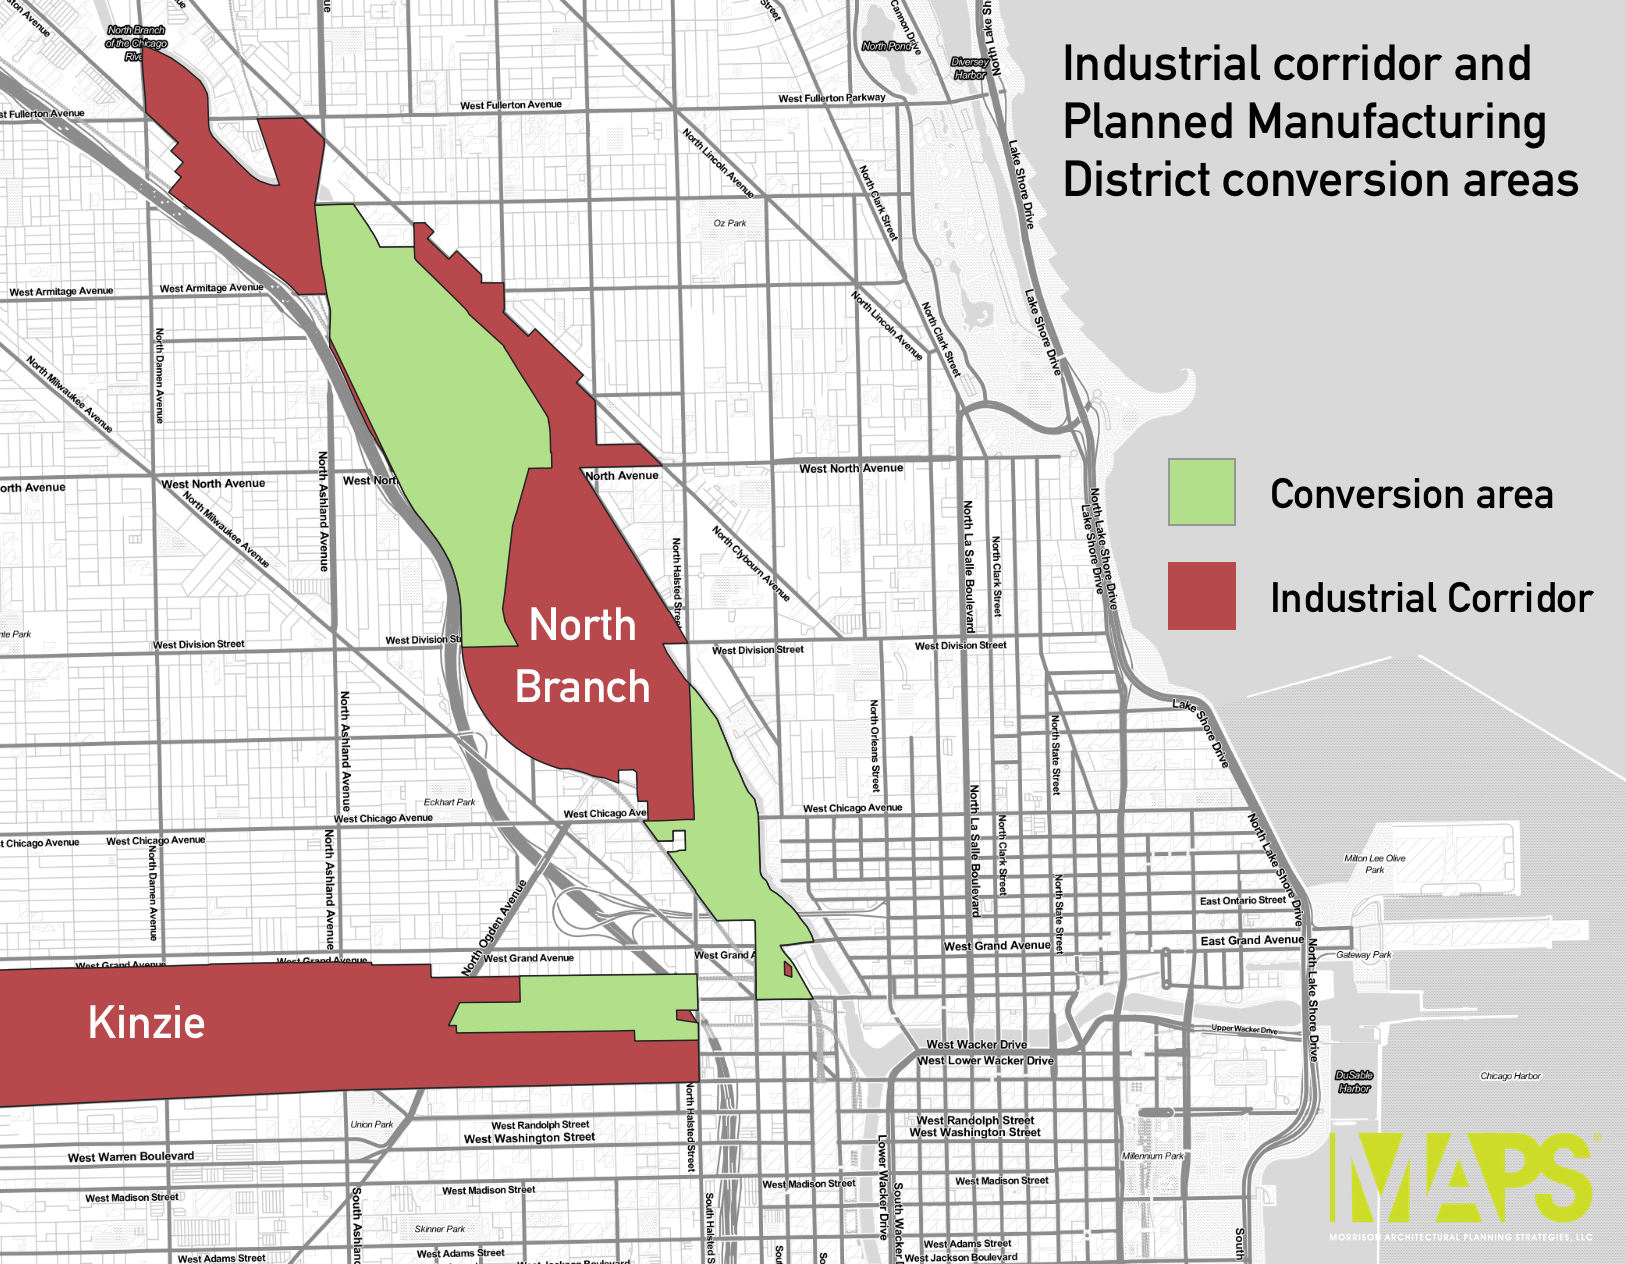 The map shows the conversion areas (in green) that would be eligible in the proposed ordinance. They are part of the Kinzie Overlay District and the North Branch Industrial Corridor. Conversion areas are areas that had been reserved for manufacturing uses and can, since July 2017, be rezoned to B, C, and DX, depending on the area.